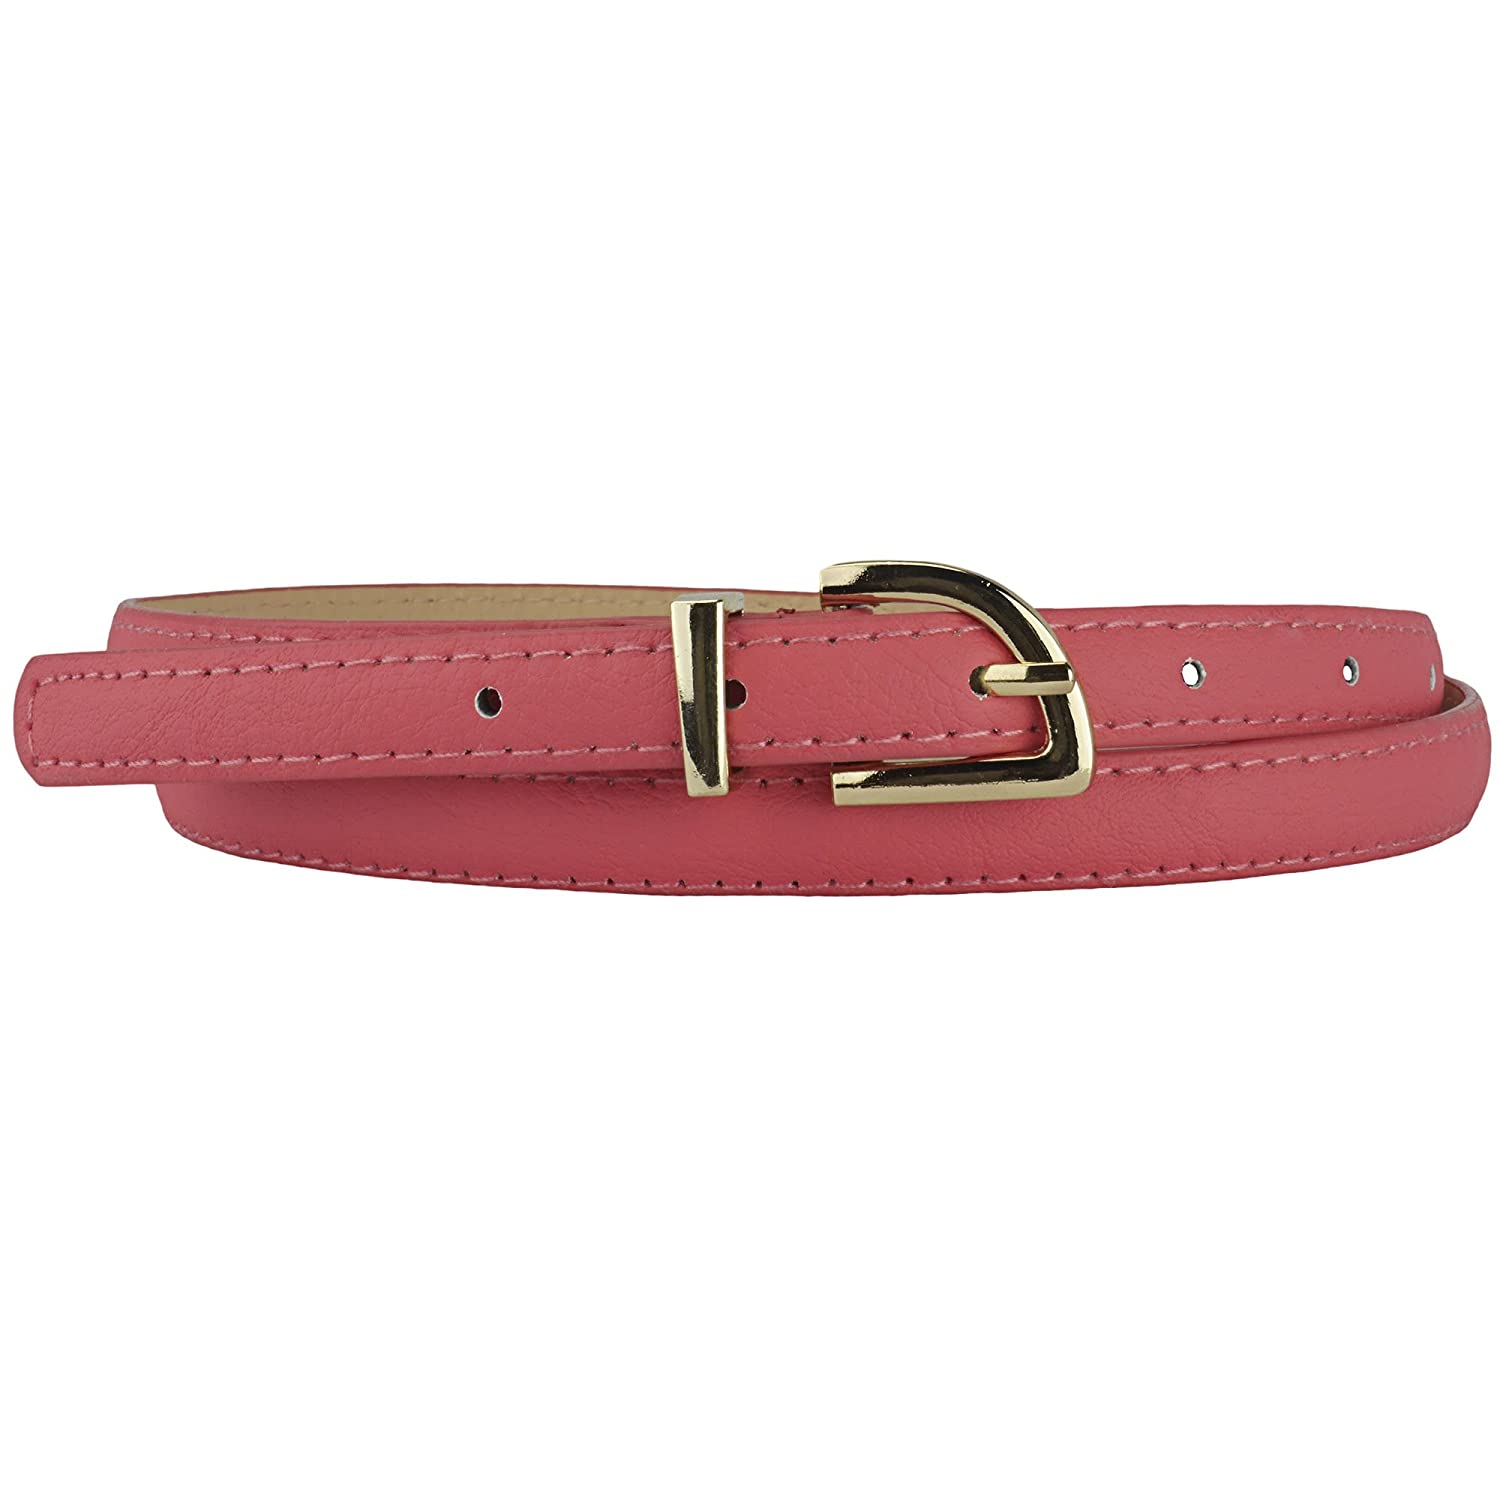 Simple and Elegant Skinny Belt with Gold Buckle